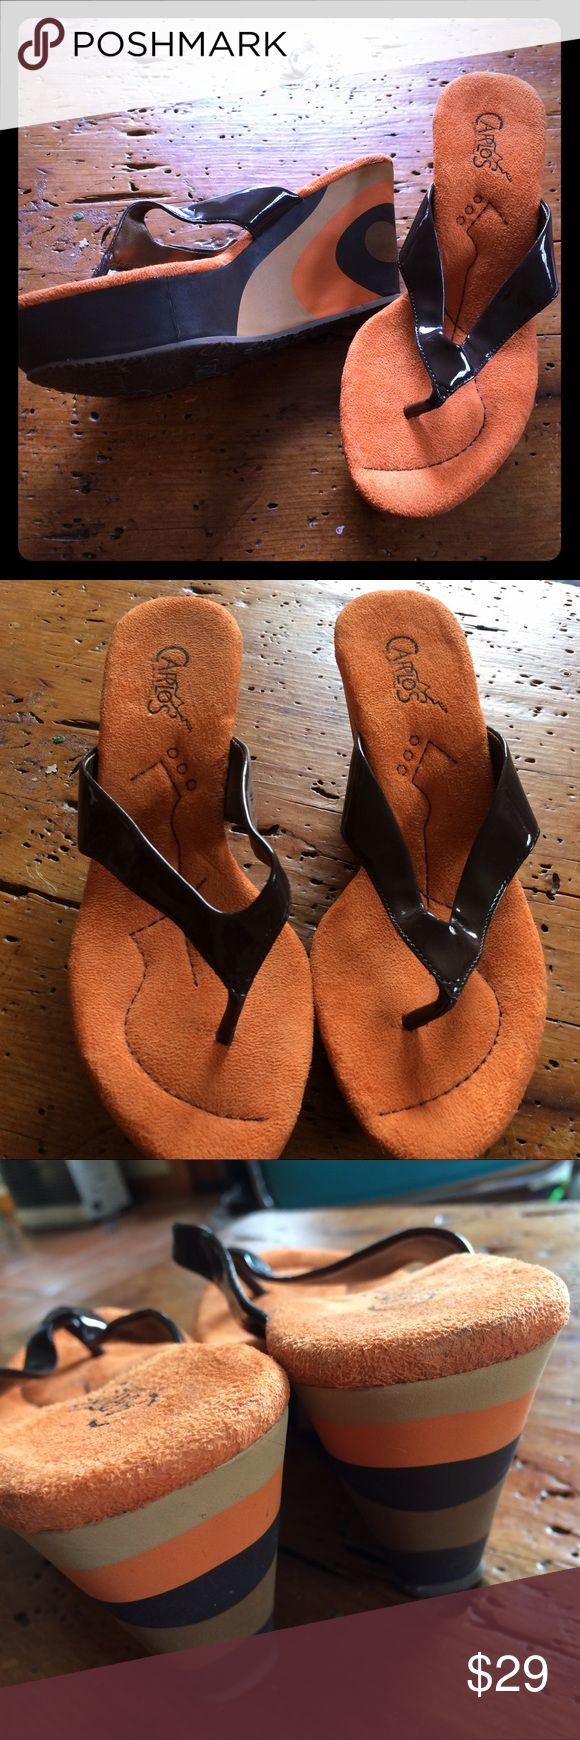 """Carlos Santana mod wedge mule sandals 6 m orange Carlos Santana mod wedge mule sandals 6 m orange uppers with mod pop art circle design in sides of wedge heel about 3.5"""" bronze shiny man made straps Carlos Santana Shoes Wedges"""